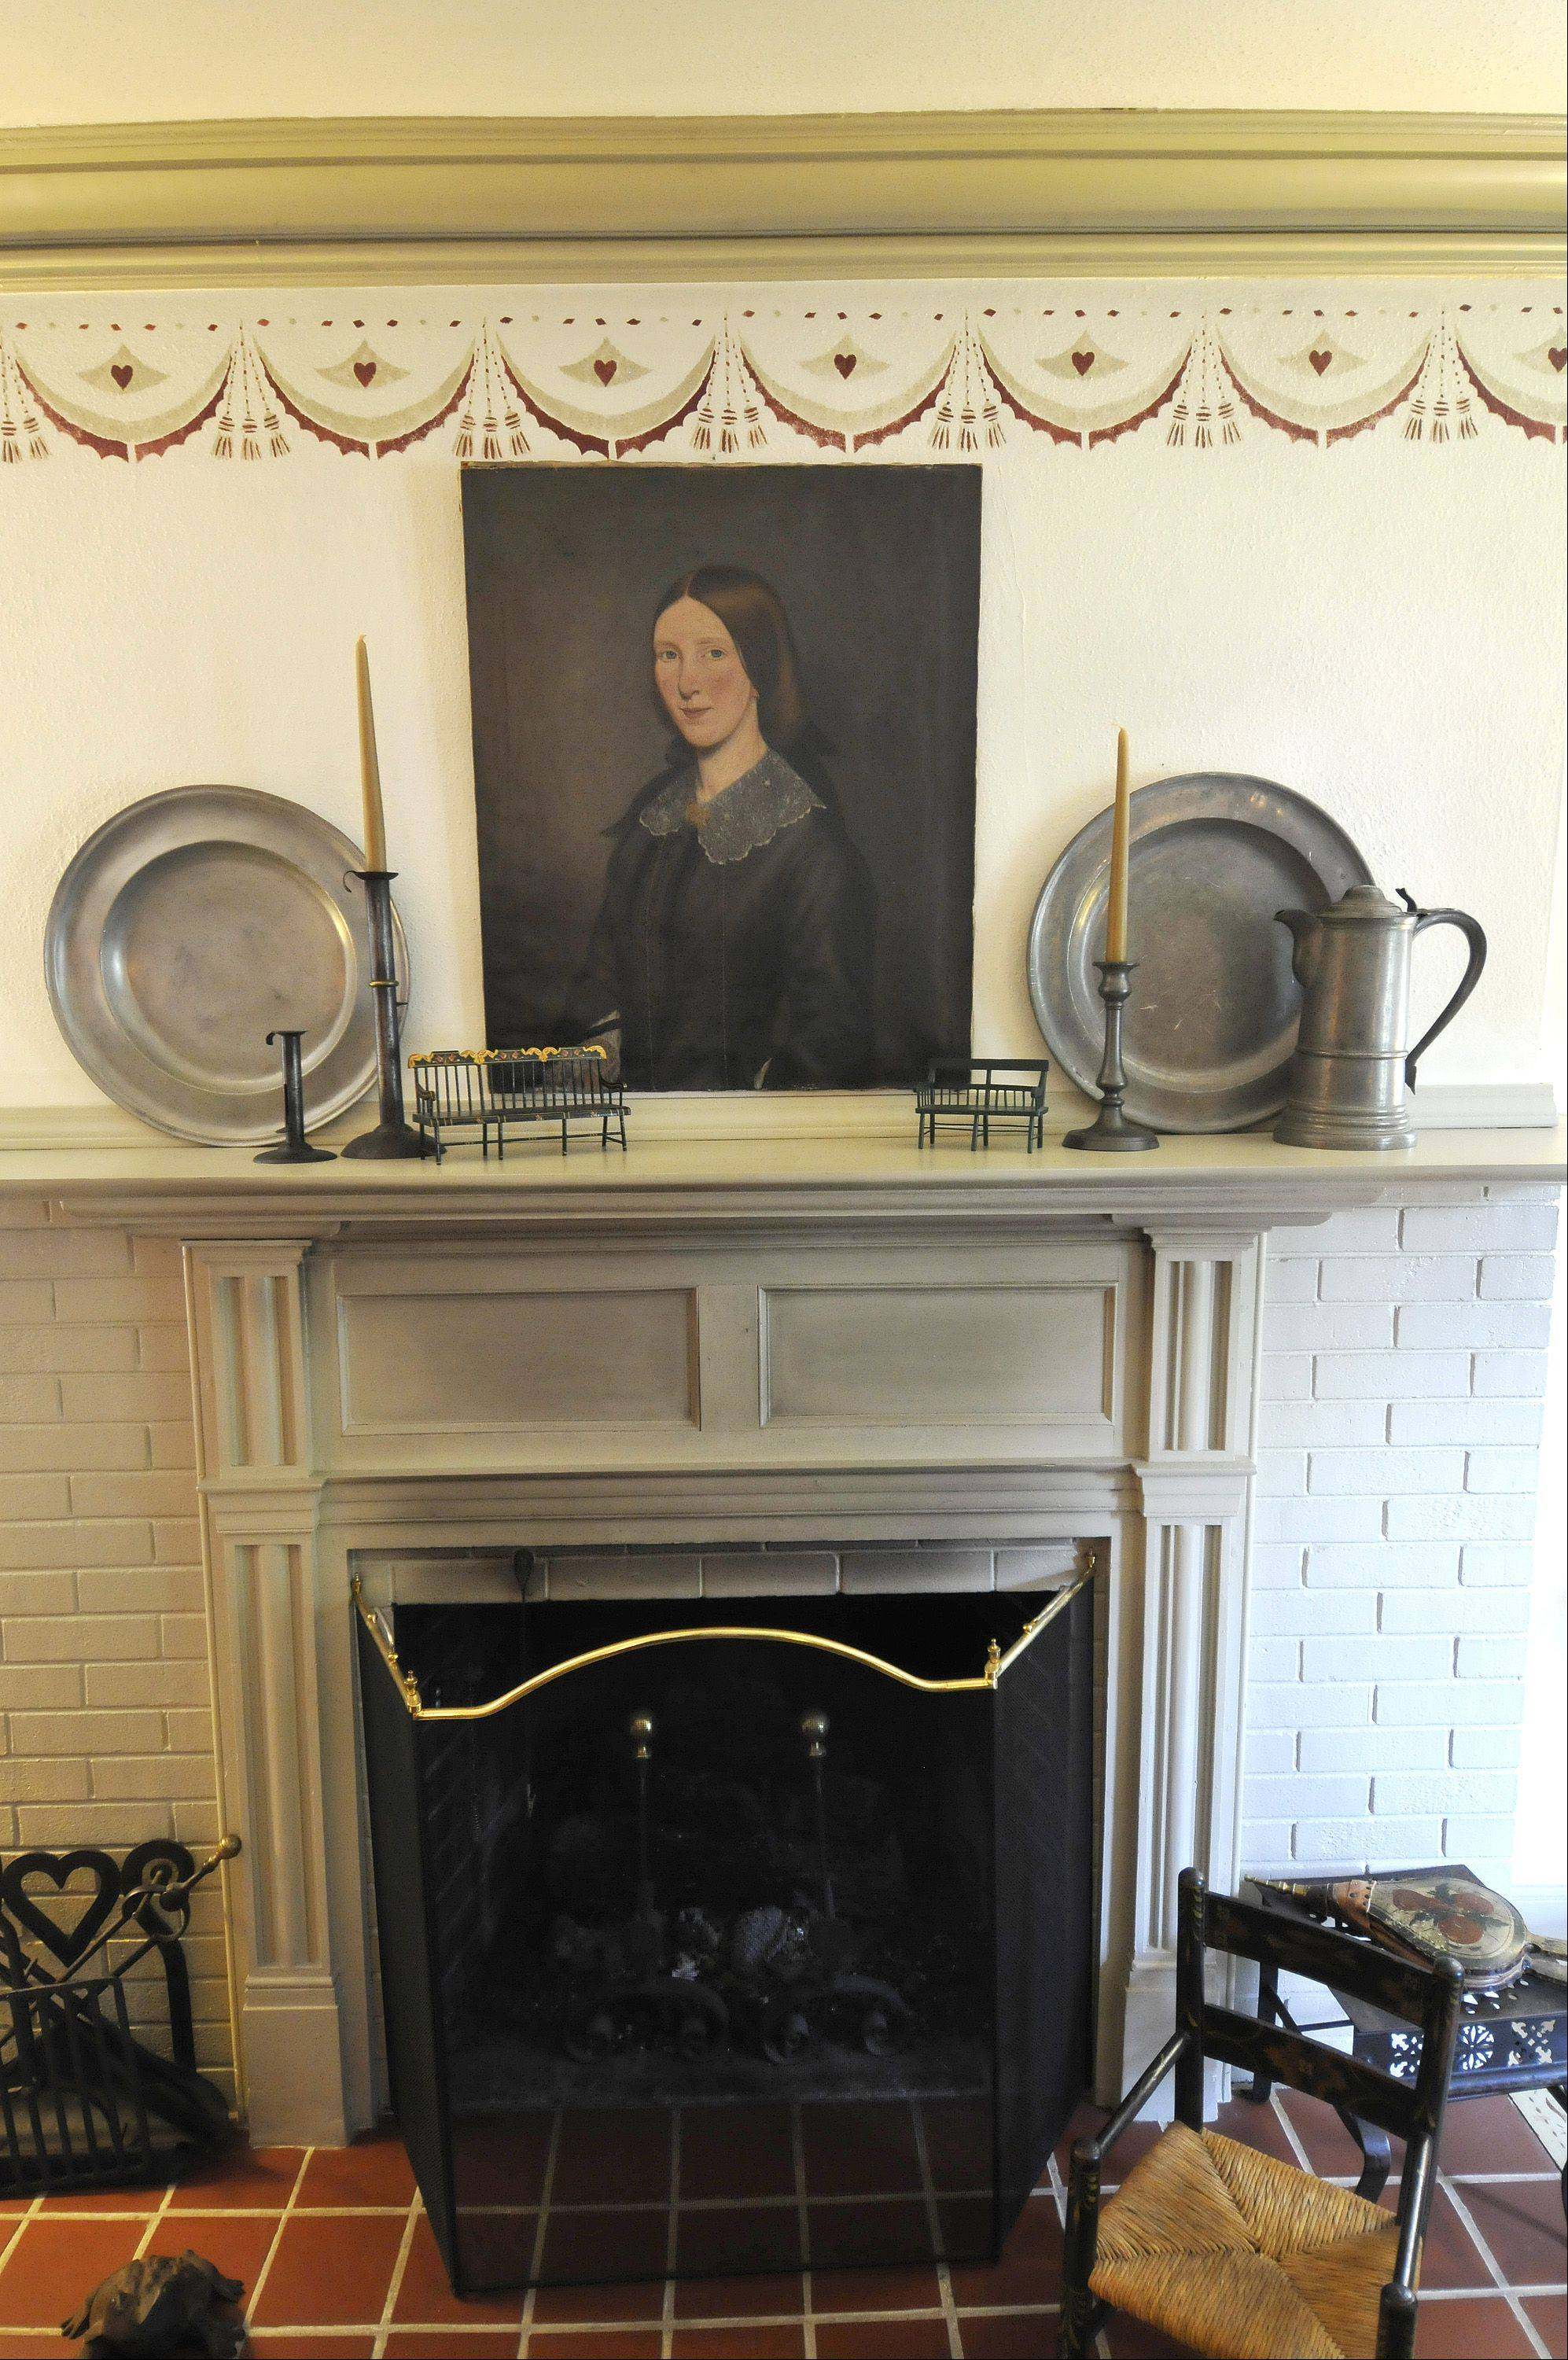 This mantelpiece in the Larsen home is from about 1850. The oil painting on canvas above it dates to about 1820.